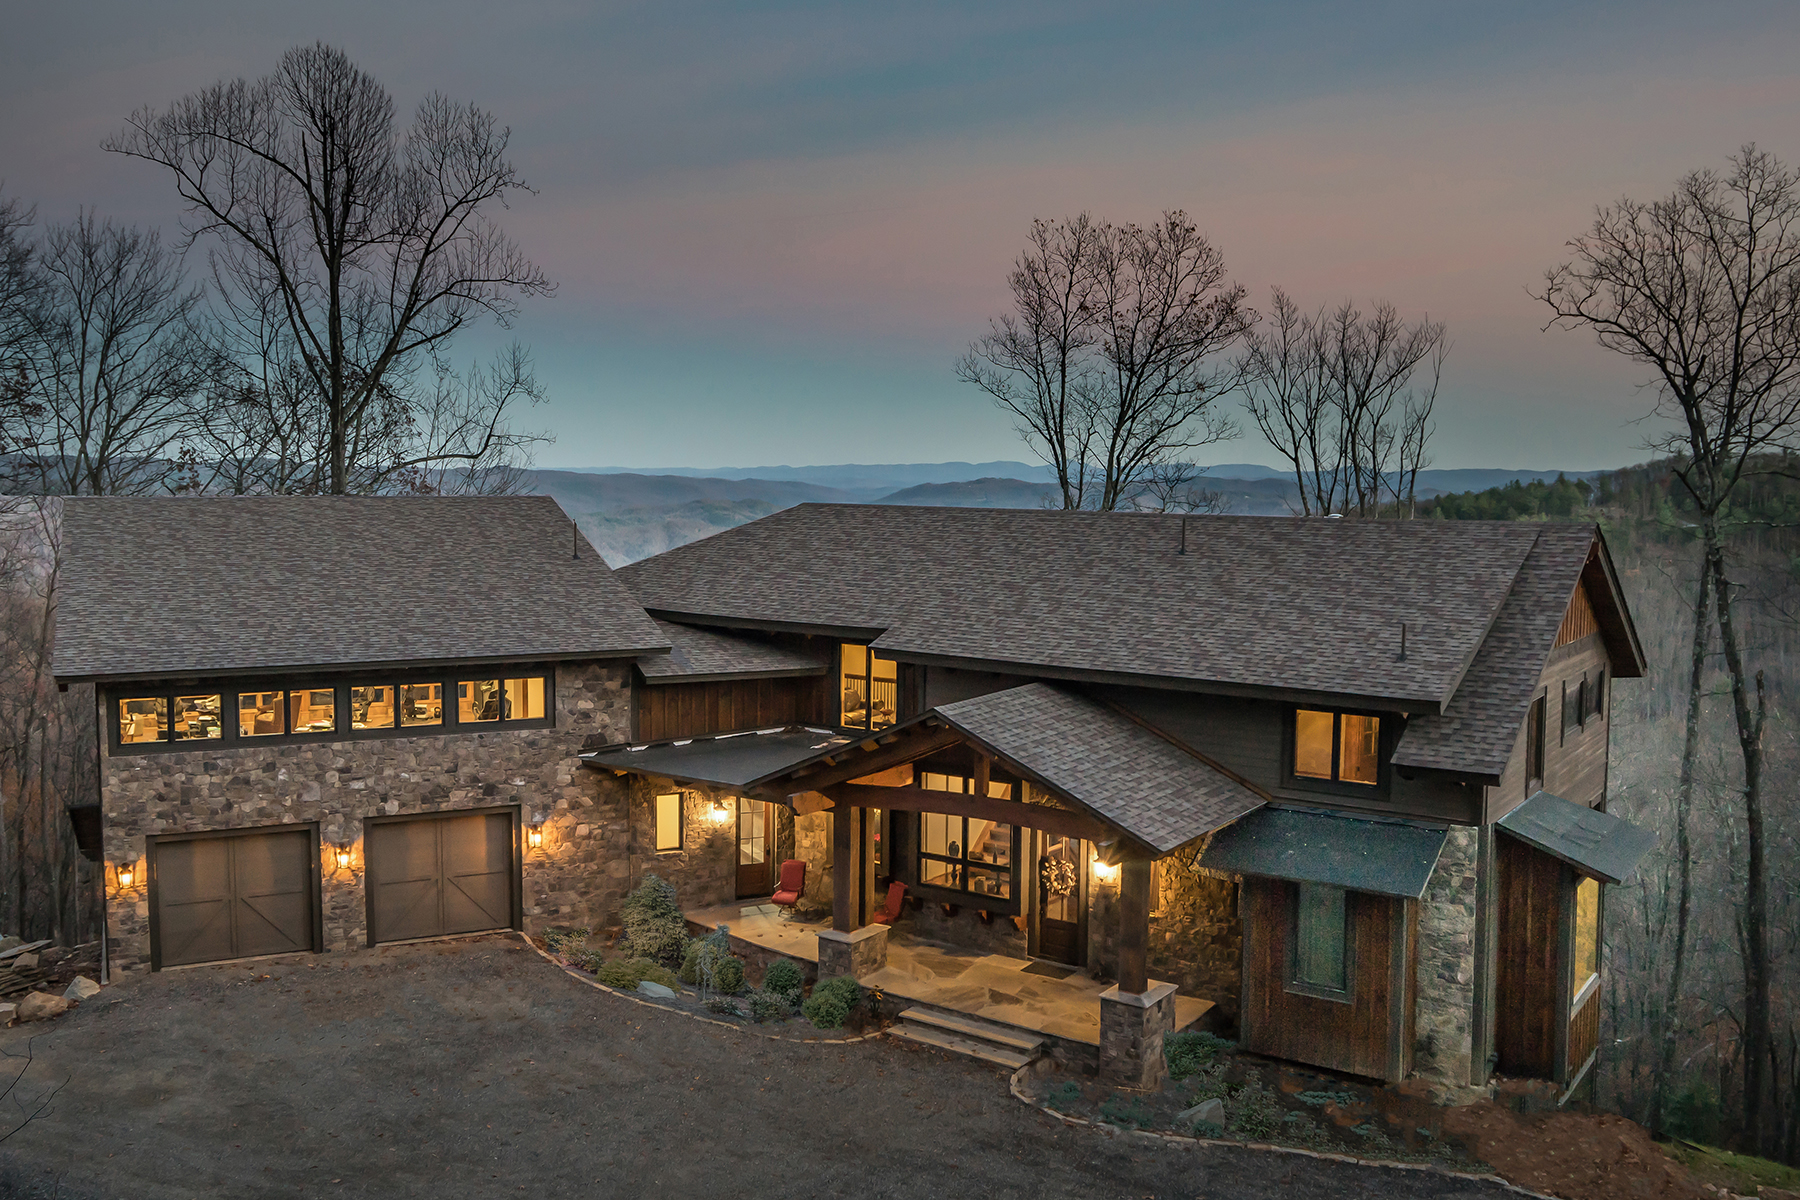 Single Family Home for Sale at BOONE - BLUE RIDGE MOUNTAIN CLUB 708 Goldenrod Boone, North Carolina 28607 United States